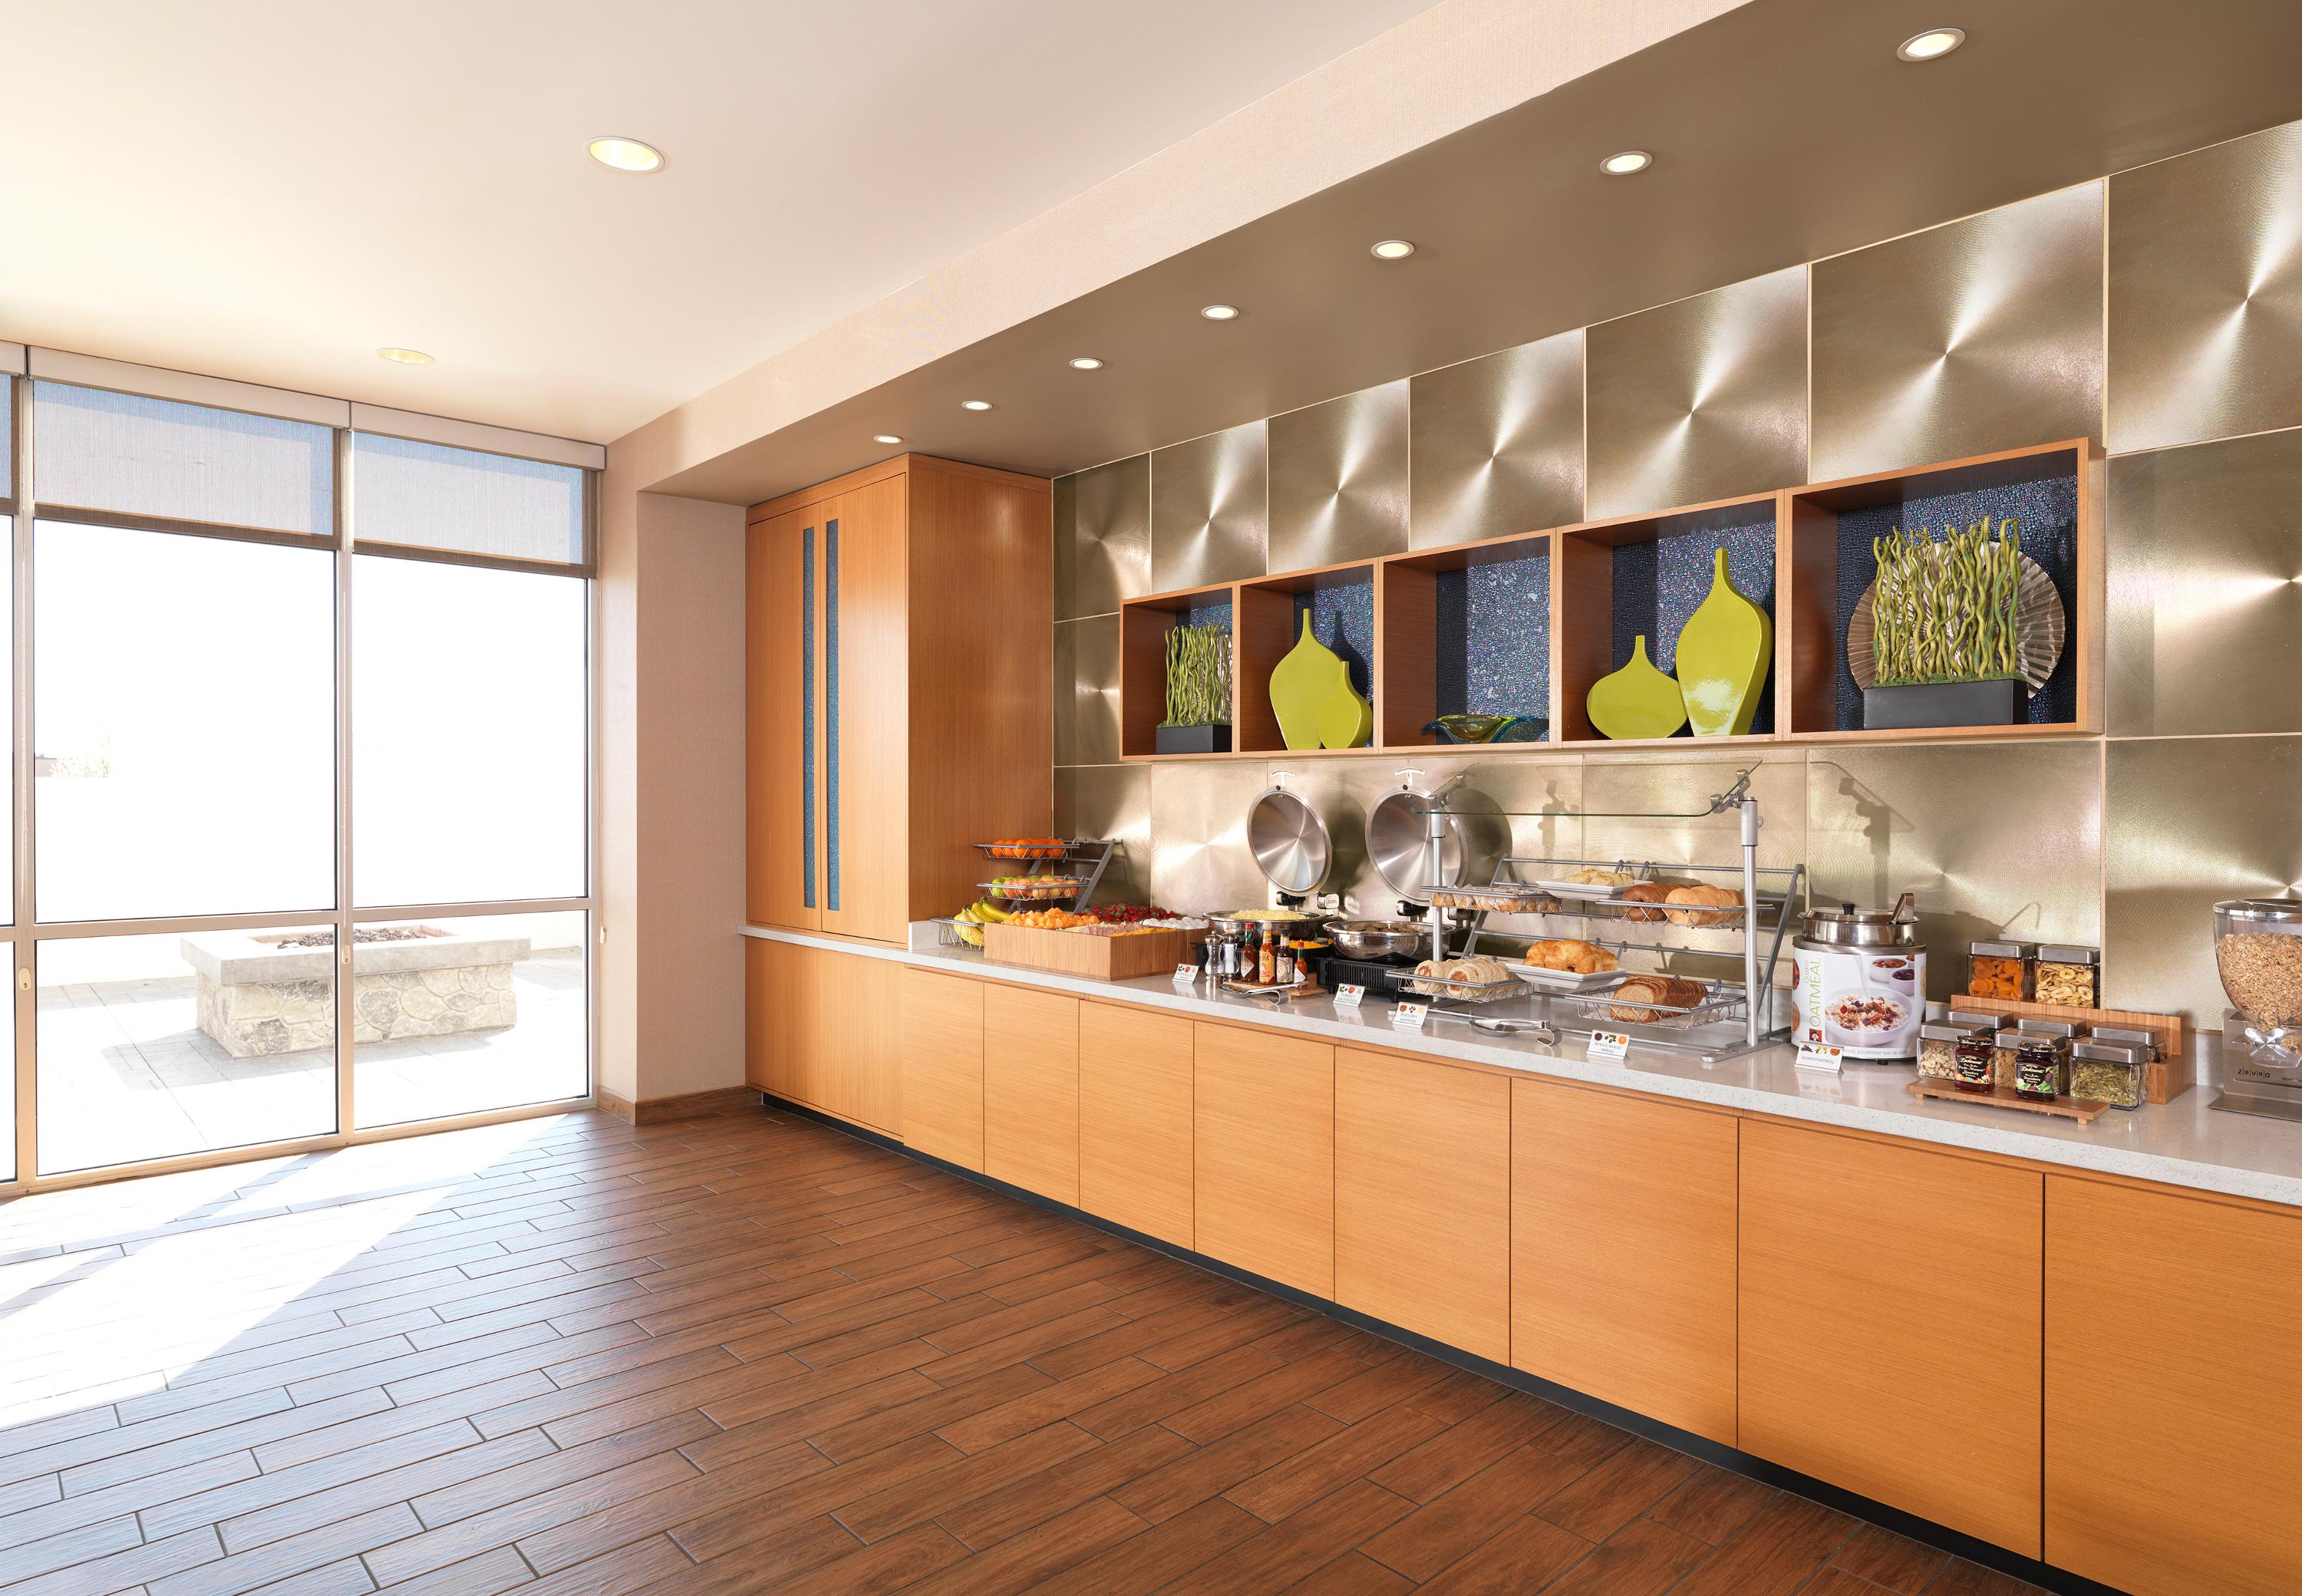 SpringHill Suites by Marriott Denver Tech Center image 10